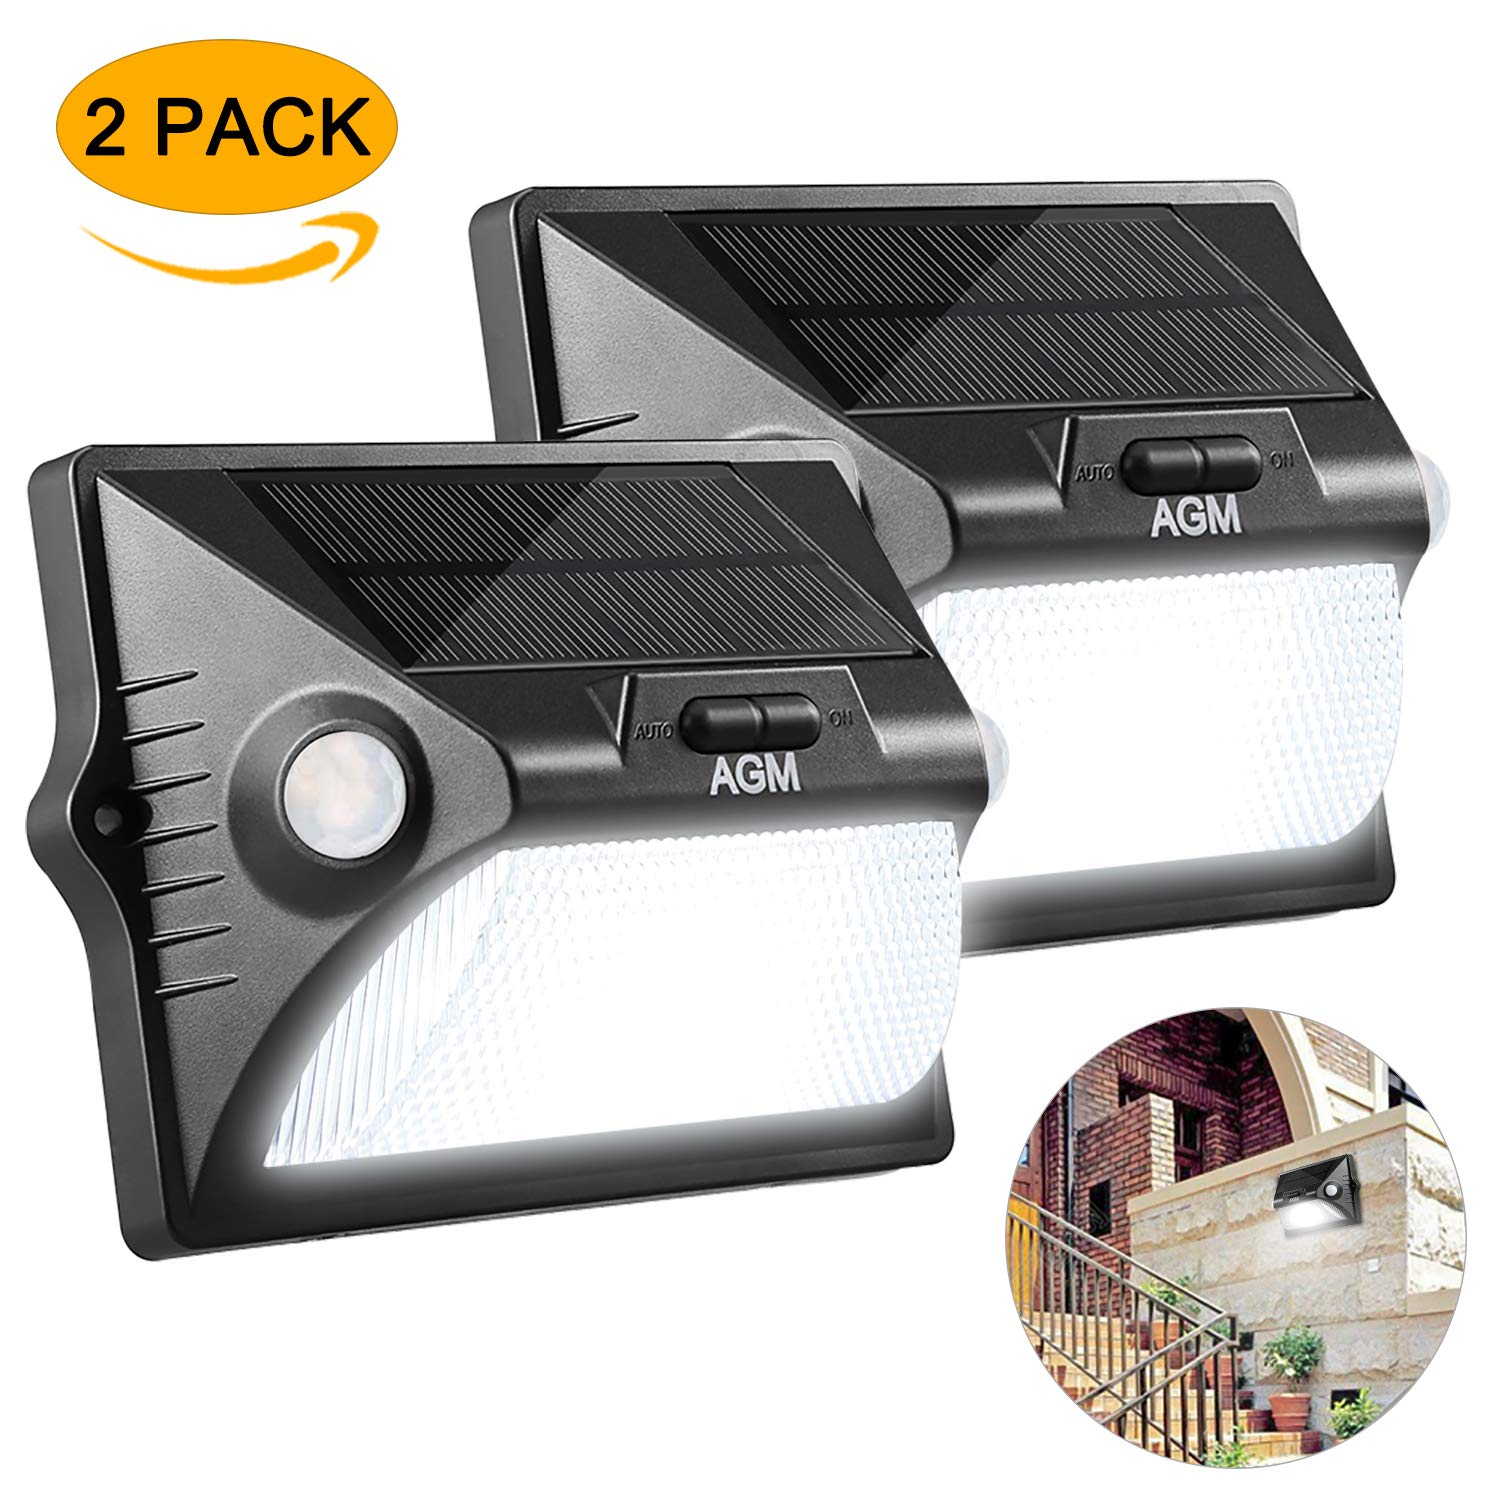 AGM Sensor Solar Lights, 12 LED Solar Powered Light Walkway Lighting IPX65 Waterproof Light Wide Angle Sensor Security Motion Lights for Patio, Deck, Yard, Garden, Driveway, Outside Wall (Black) AGM EU